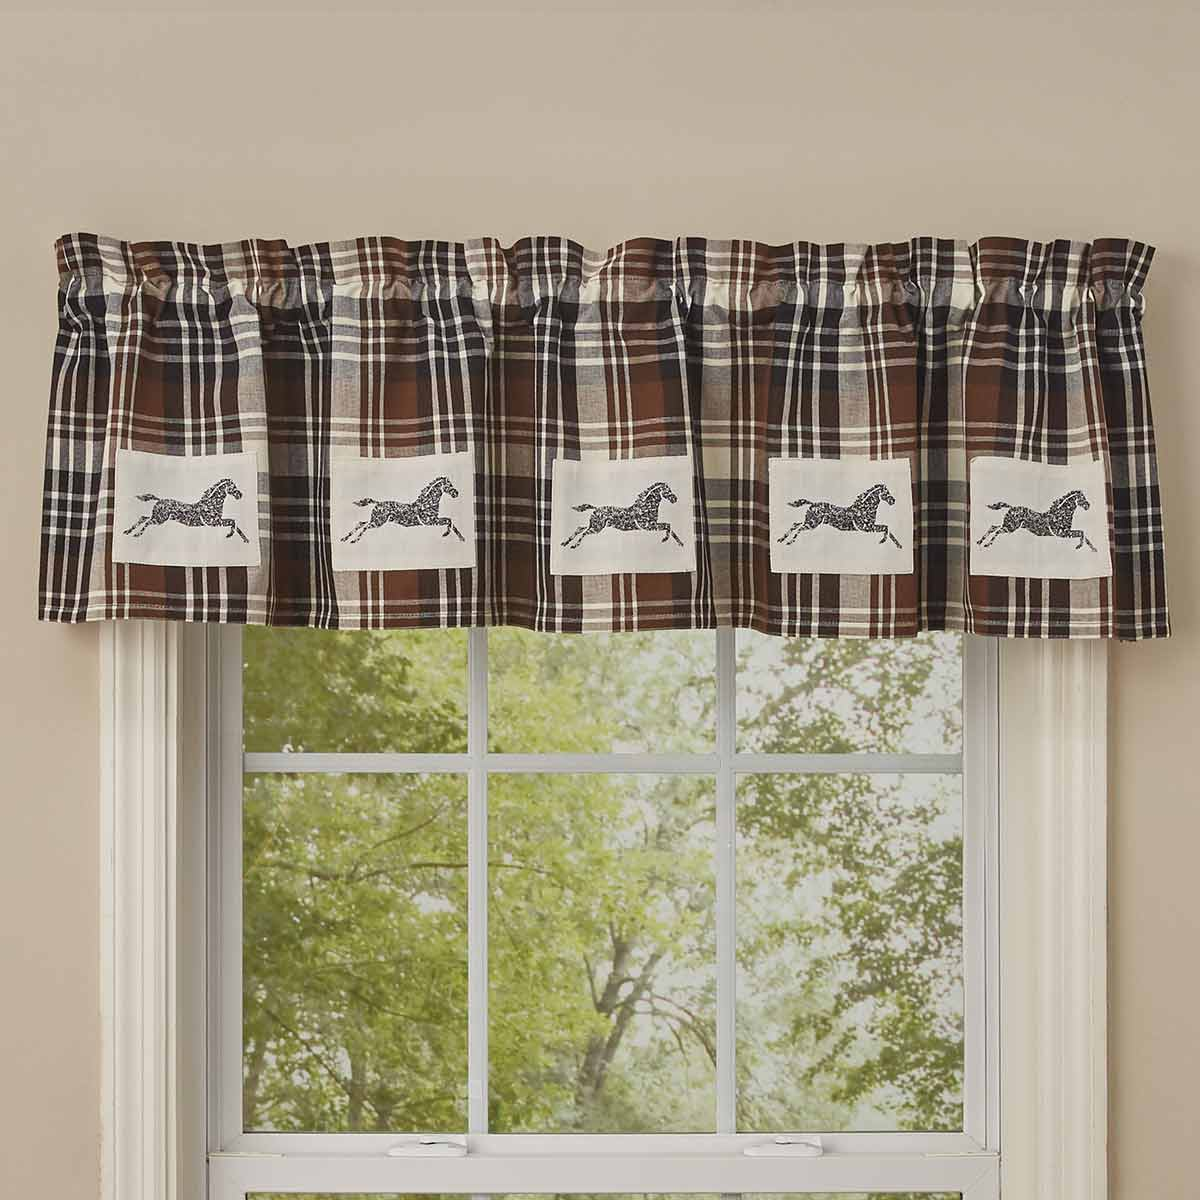 Plaid Horse Lined Valance